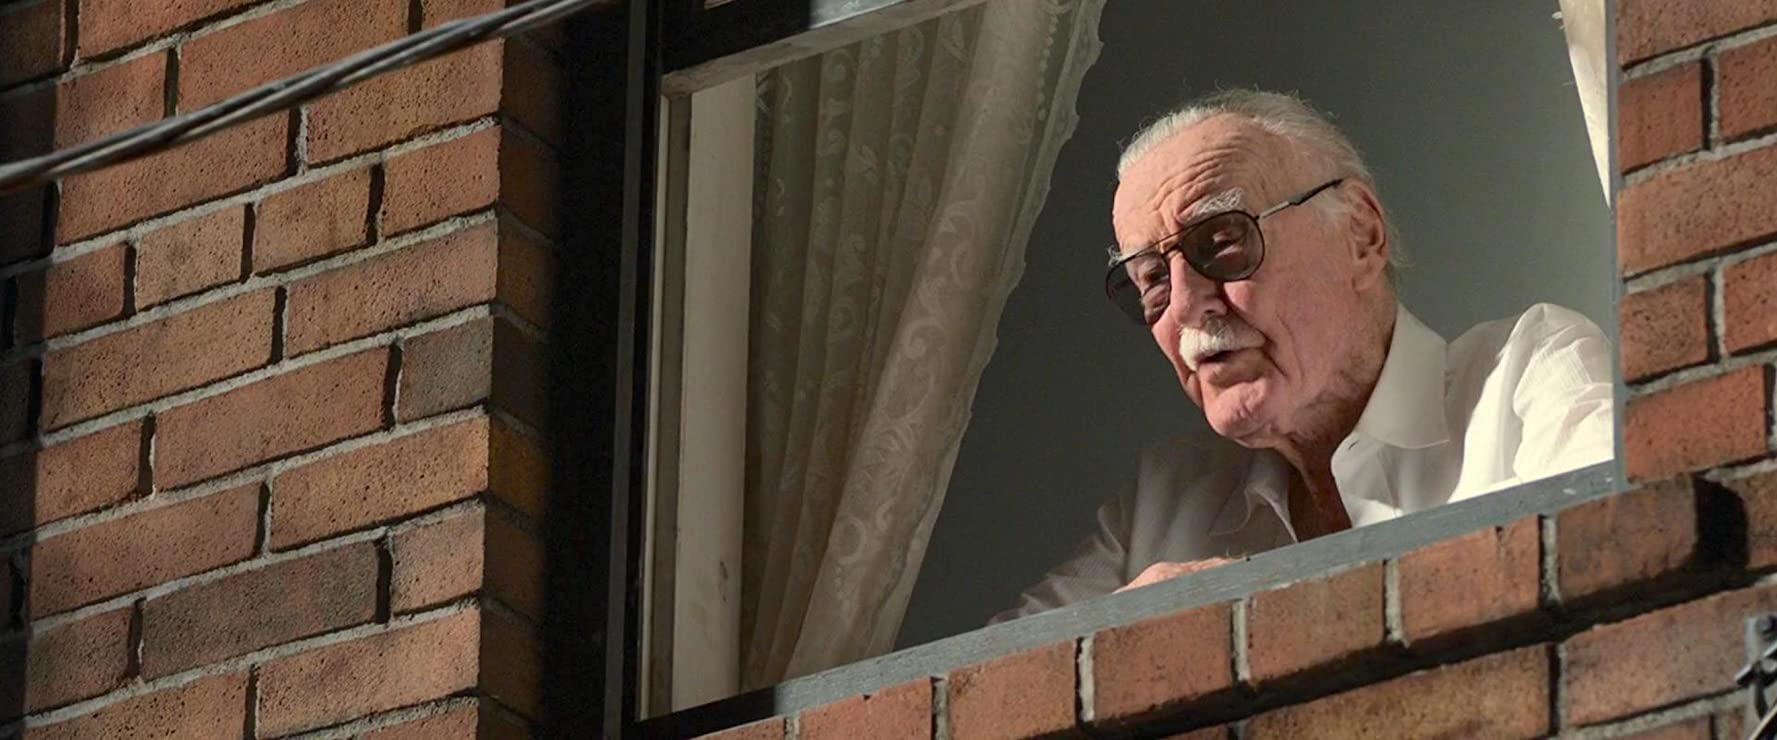 Stan Lee in Spider-Man: Homecoming (2017)